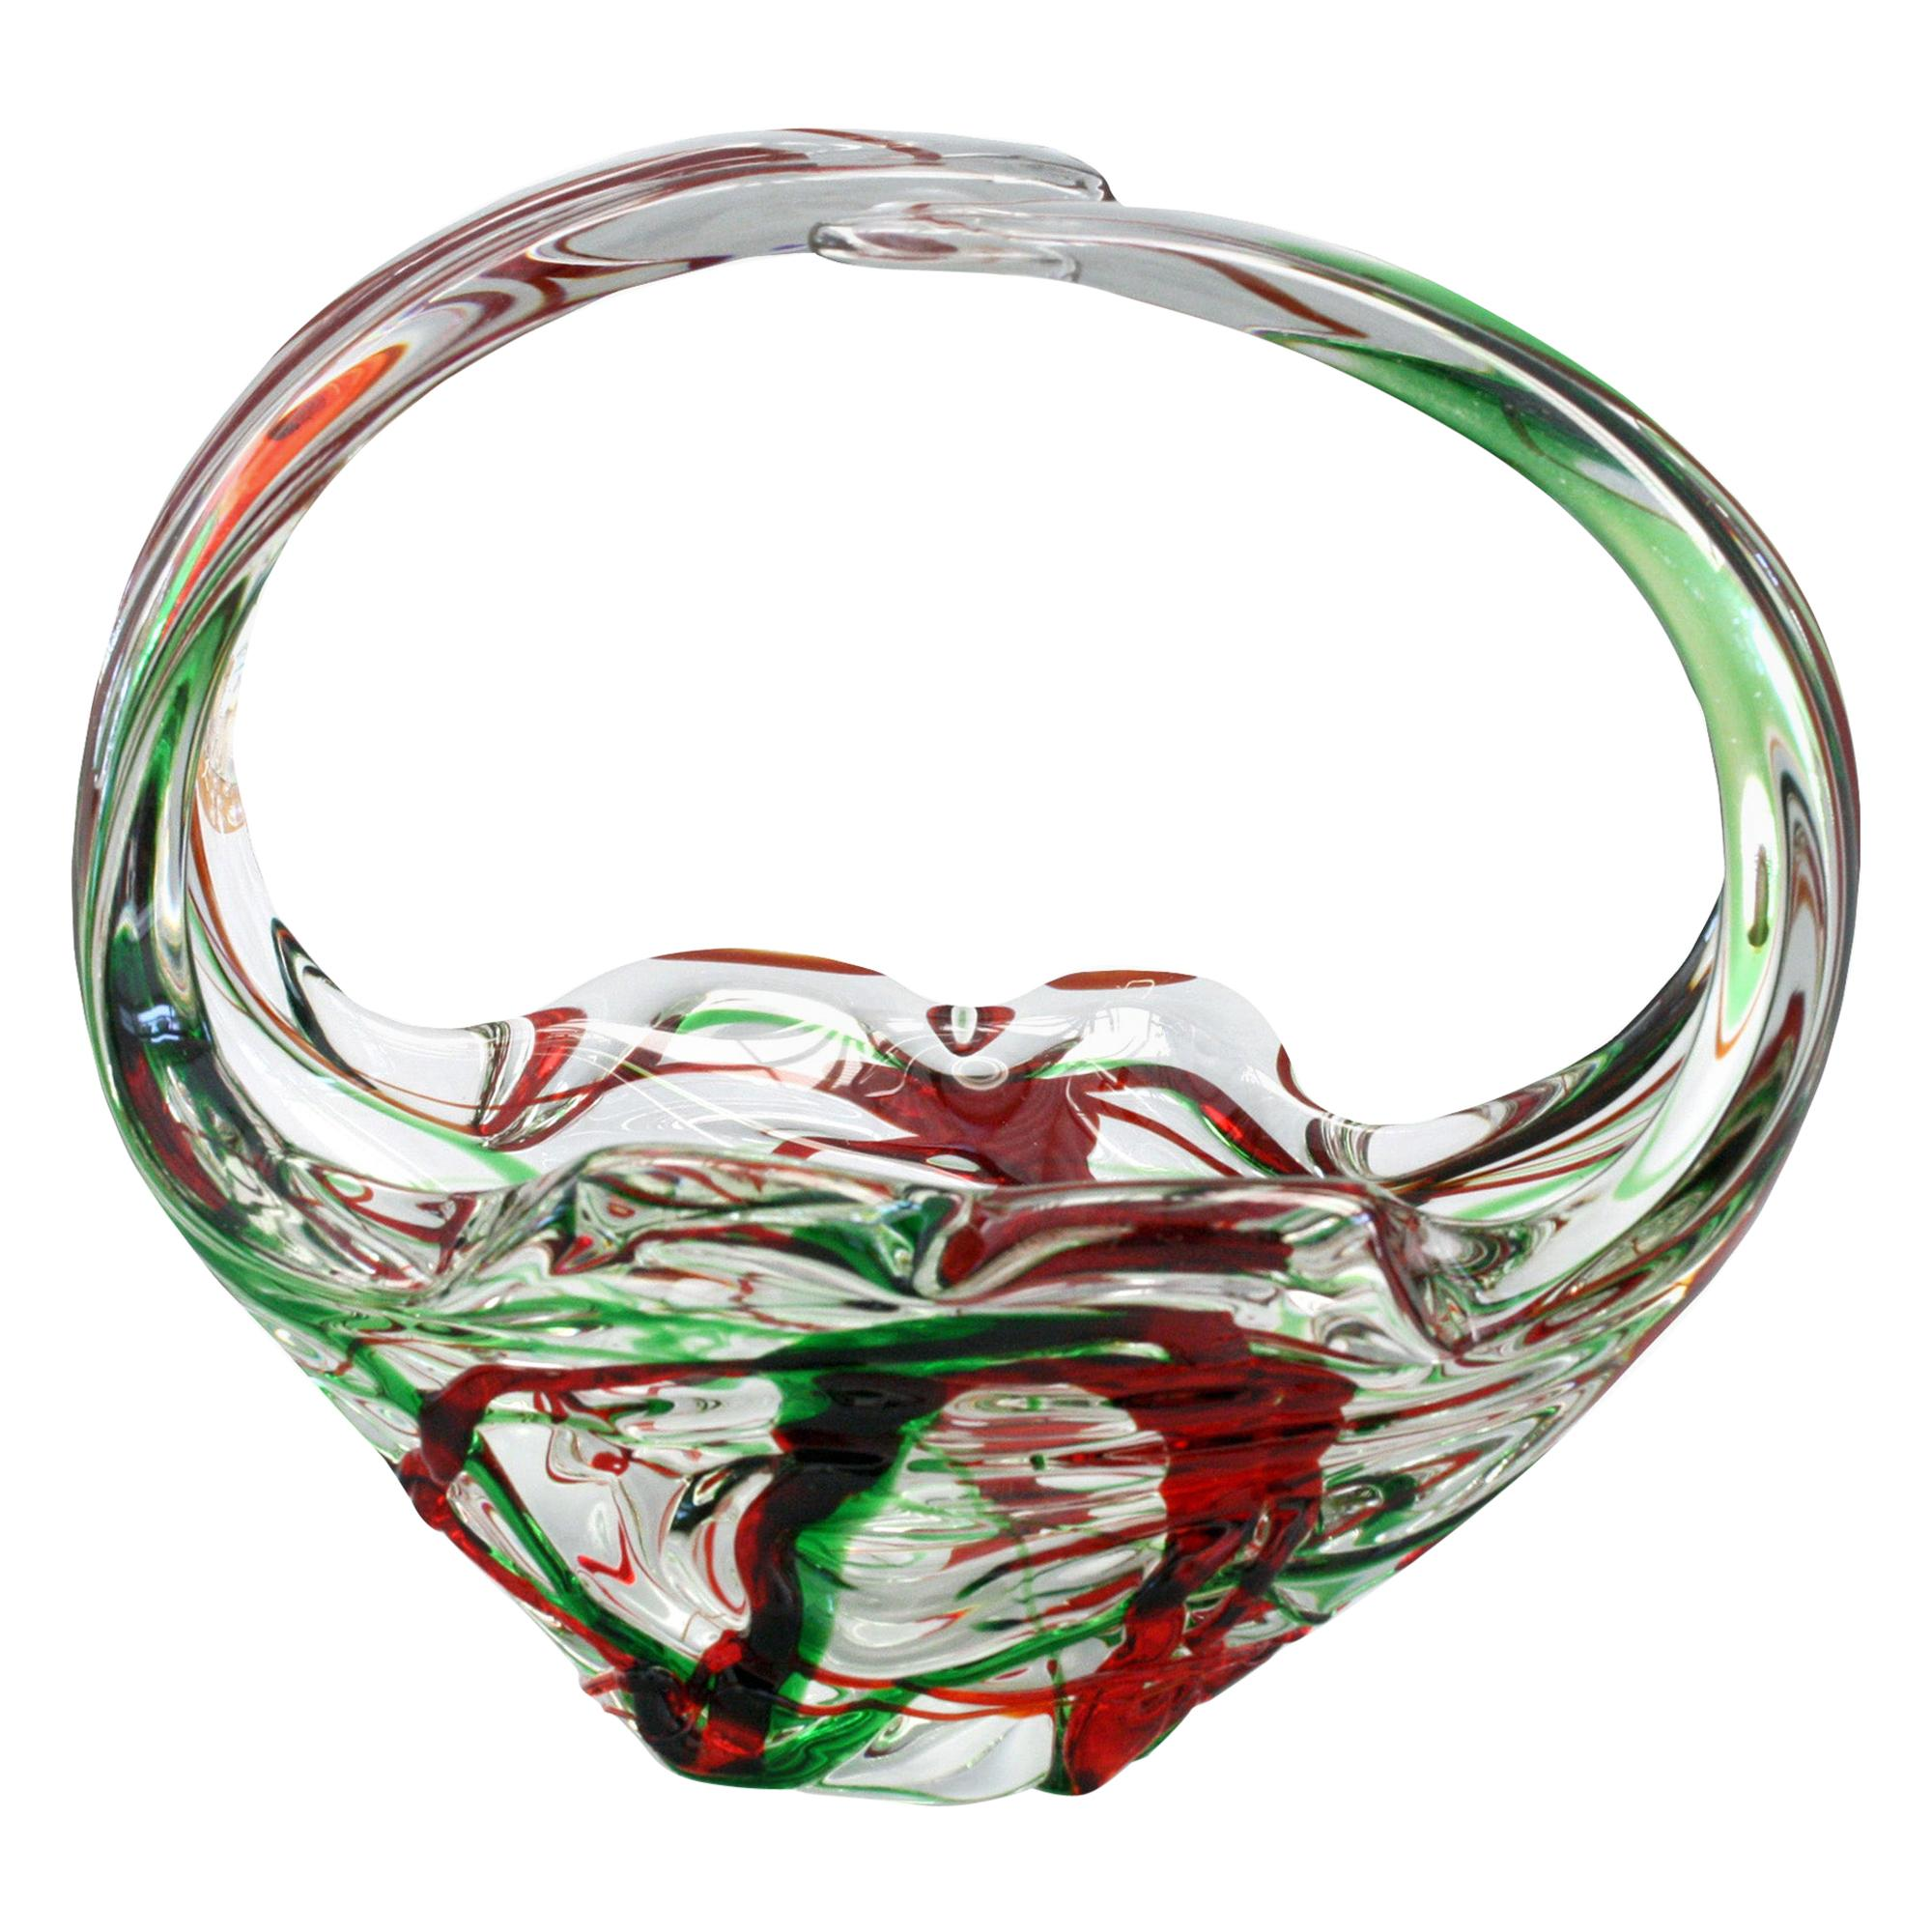 Murano Italian Midcentury Art Glass Bowl with Red and Green Trailed Designs